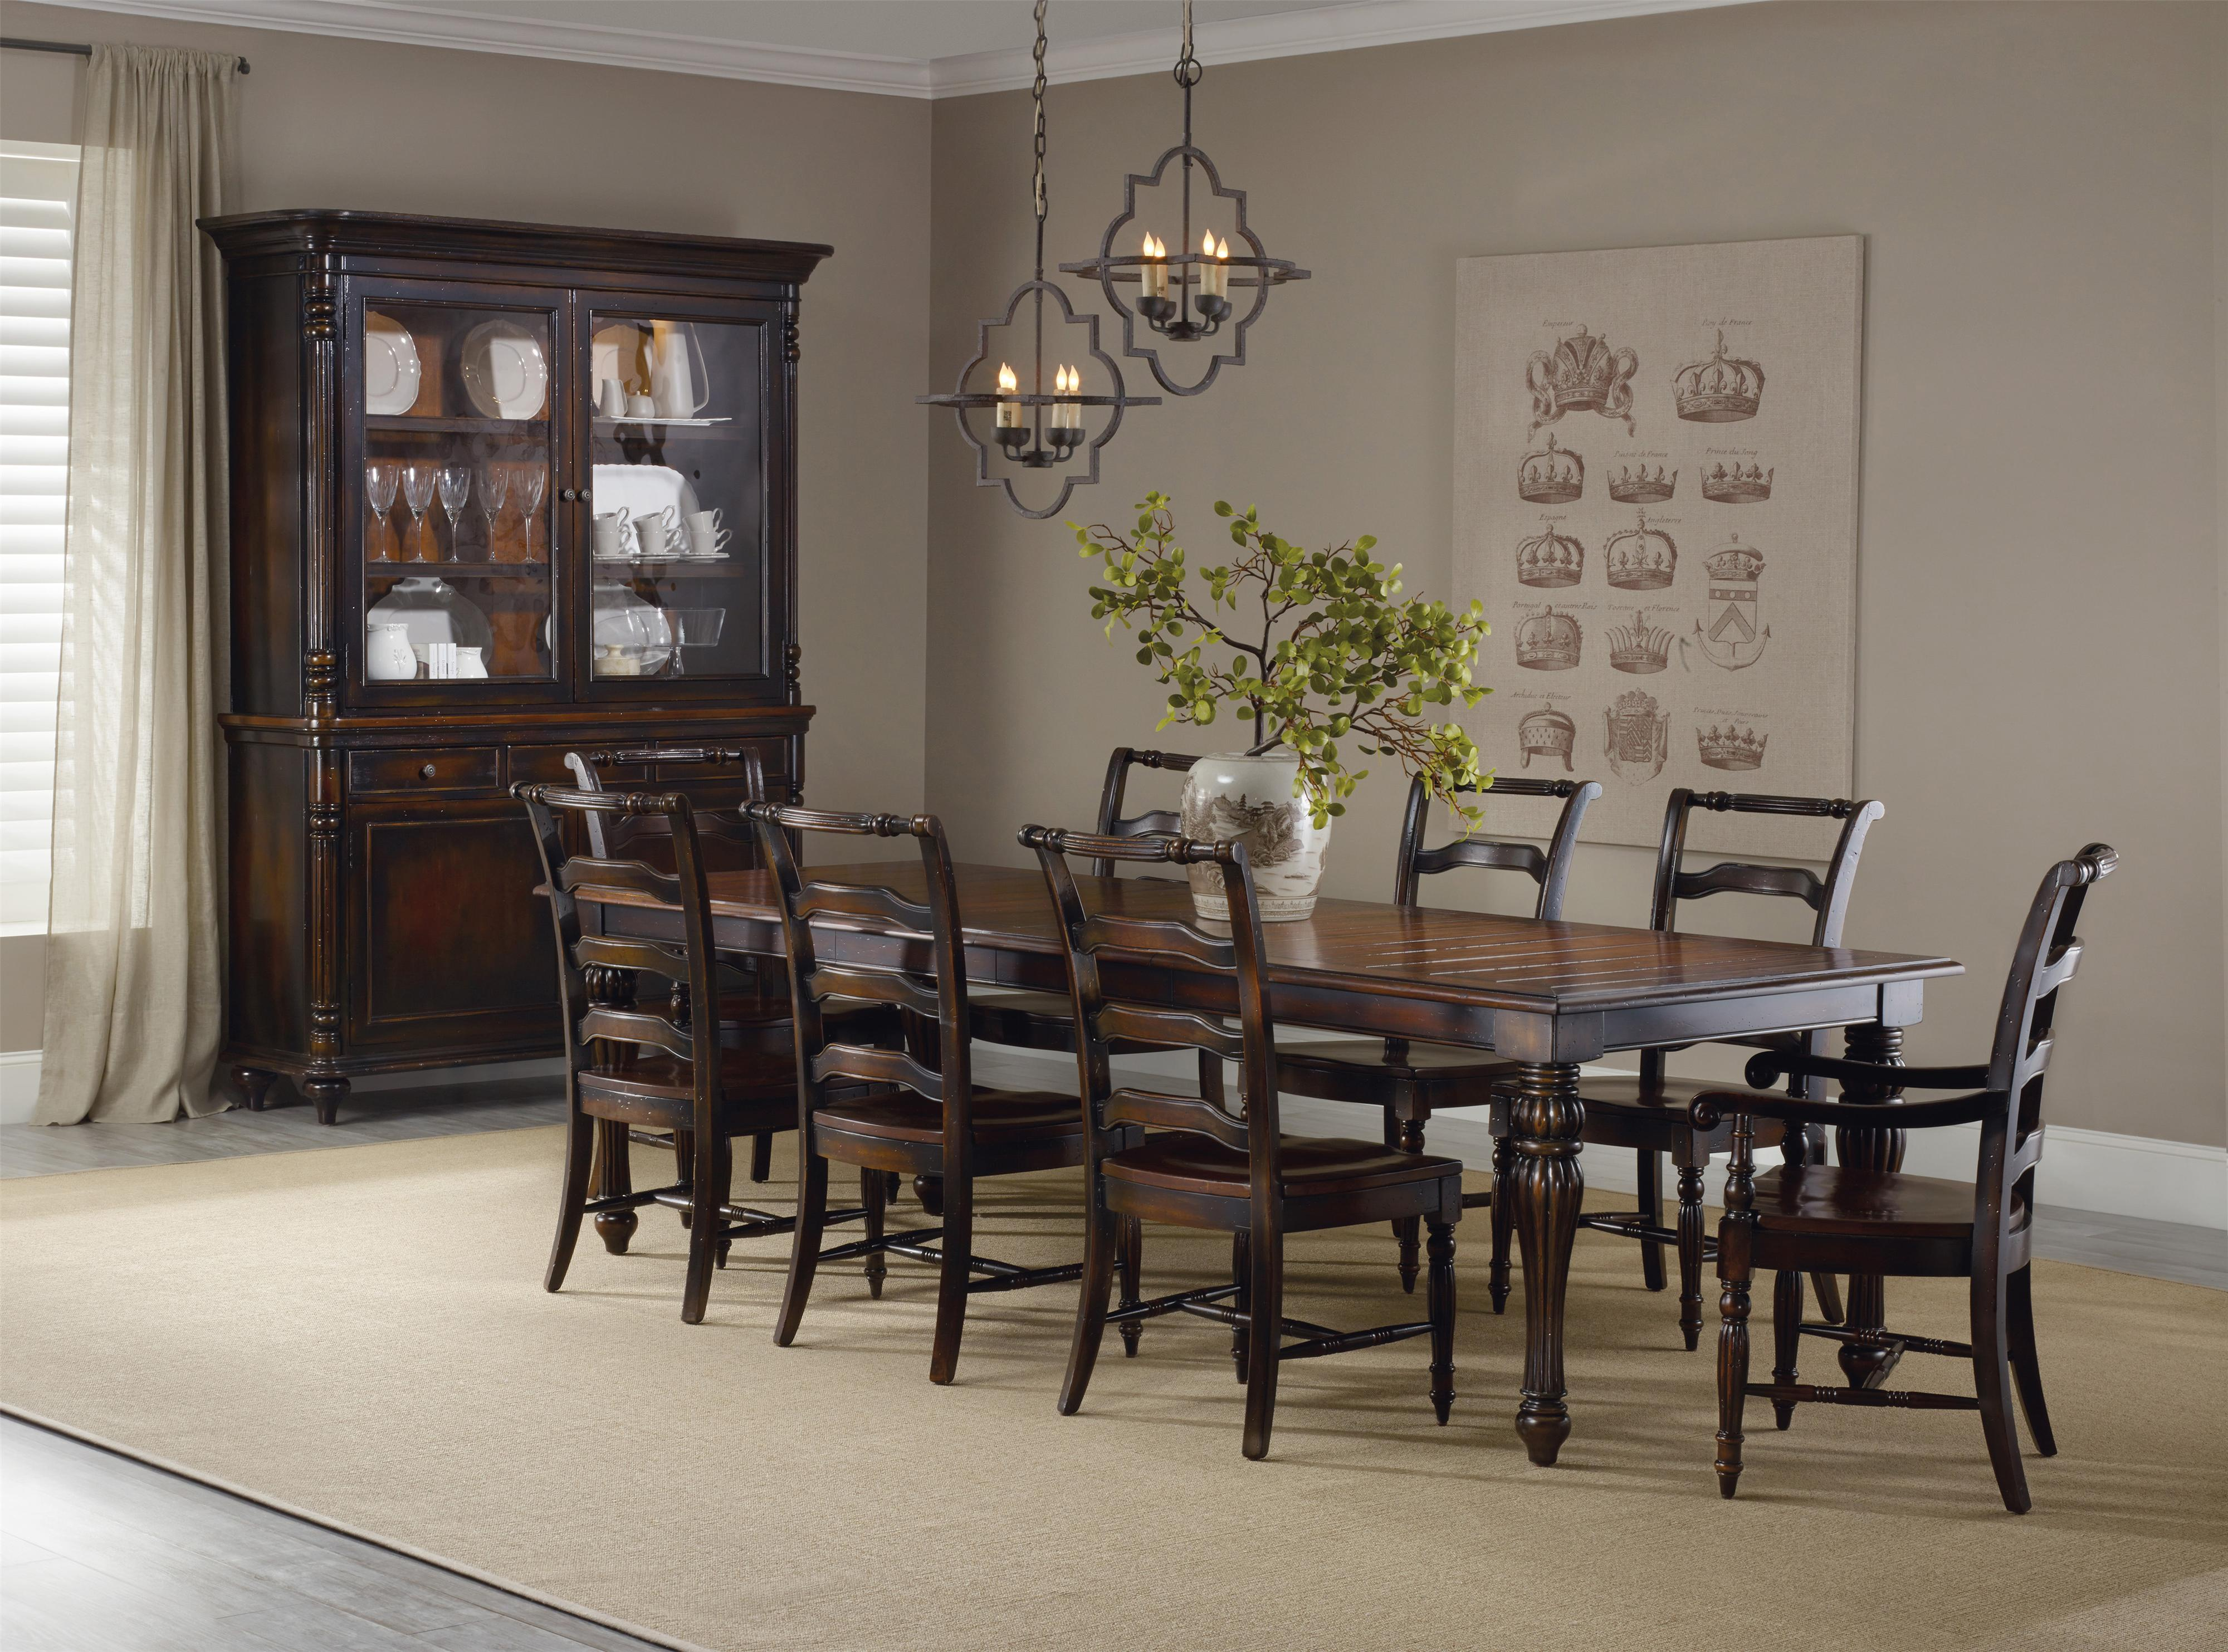 Hooker Furniture Eastridge Rectangle Table Dining Room Group - Item Number: 5177 Dining Group 1